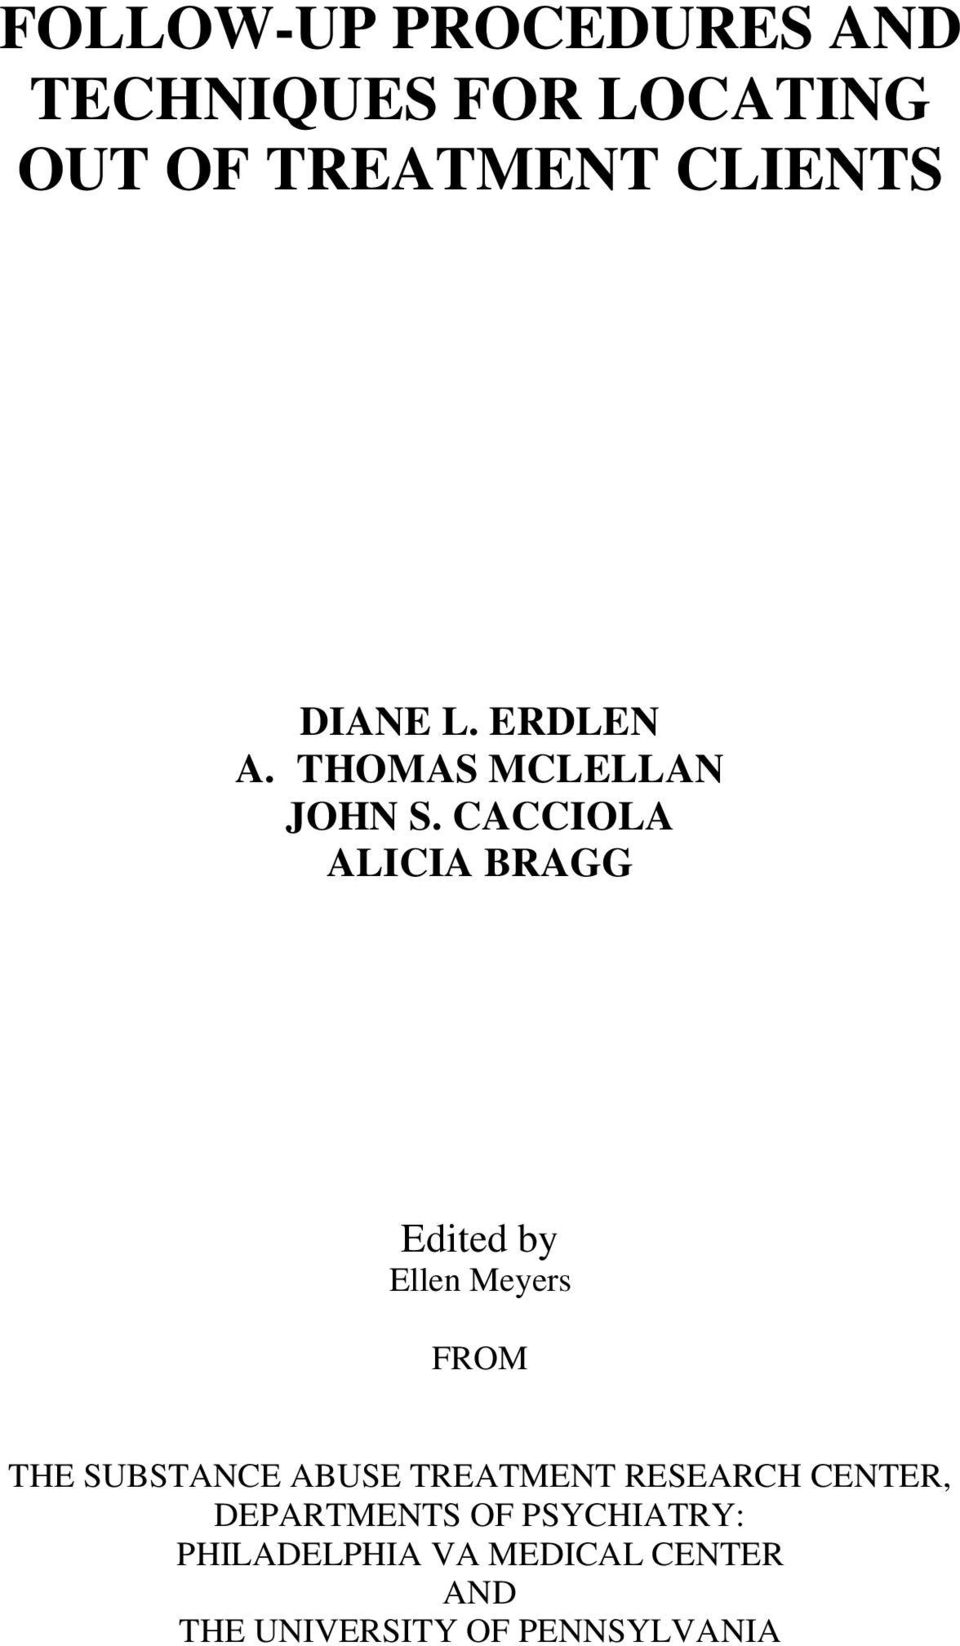 CACCIOLA ALICIA BRAGG Edited by Ellen Meyers FROM THE SUBSTANCE ABUSE